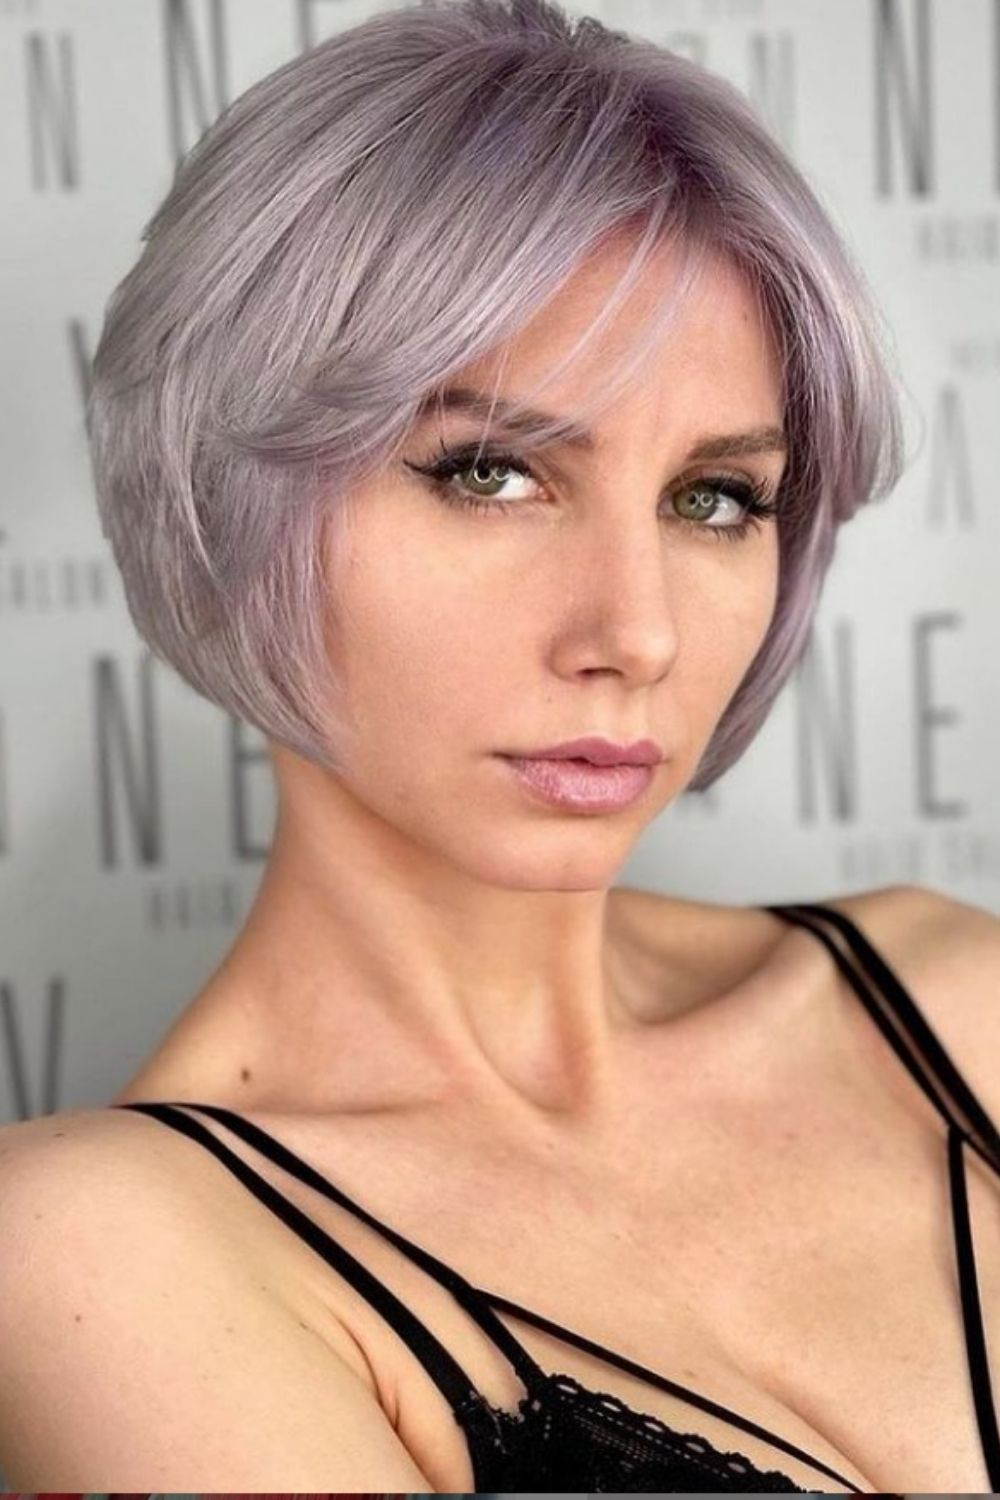 How to style women's messy short haircut and hairstyle 2021?